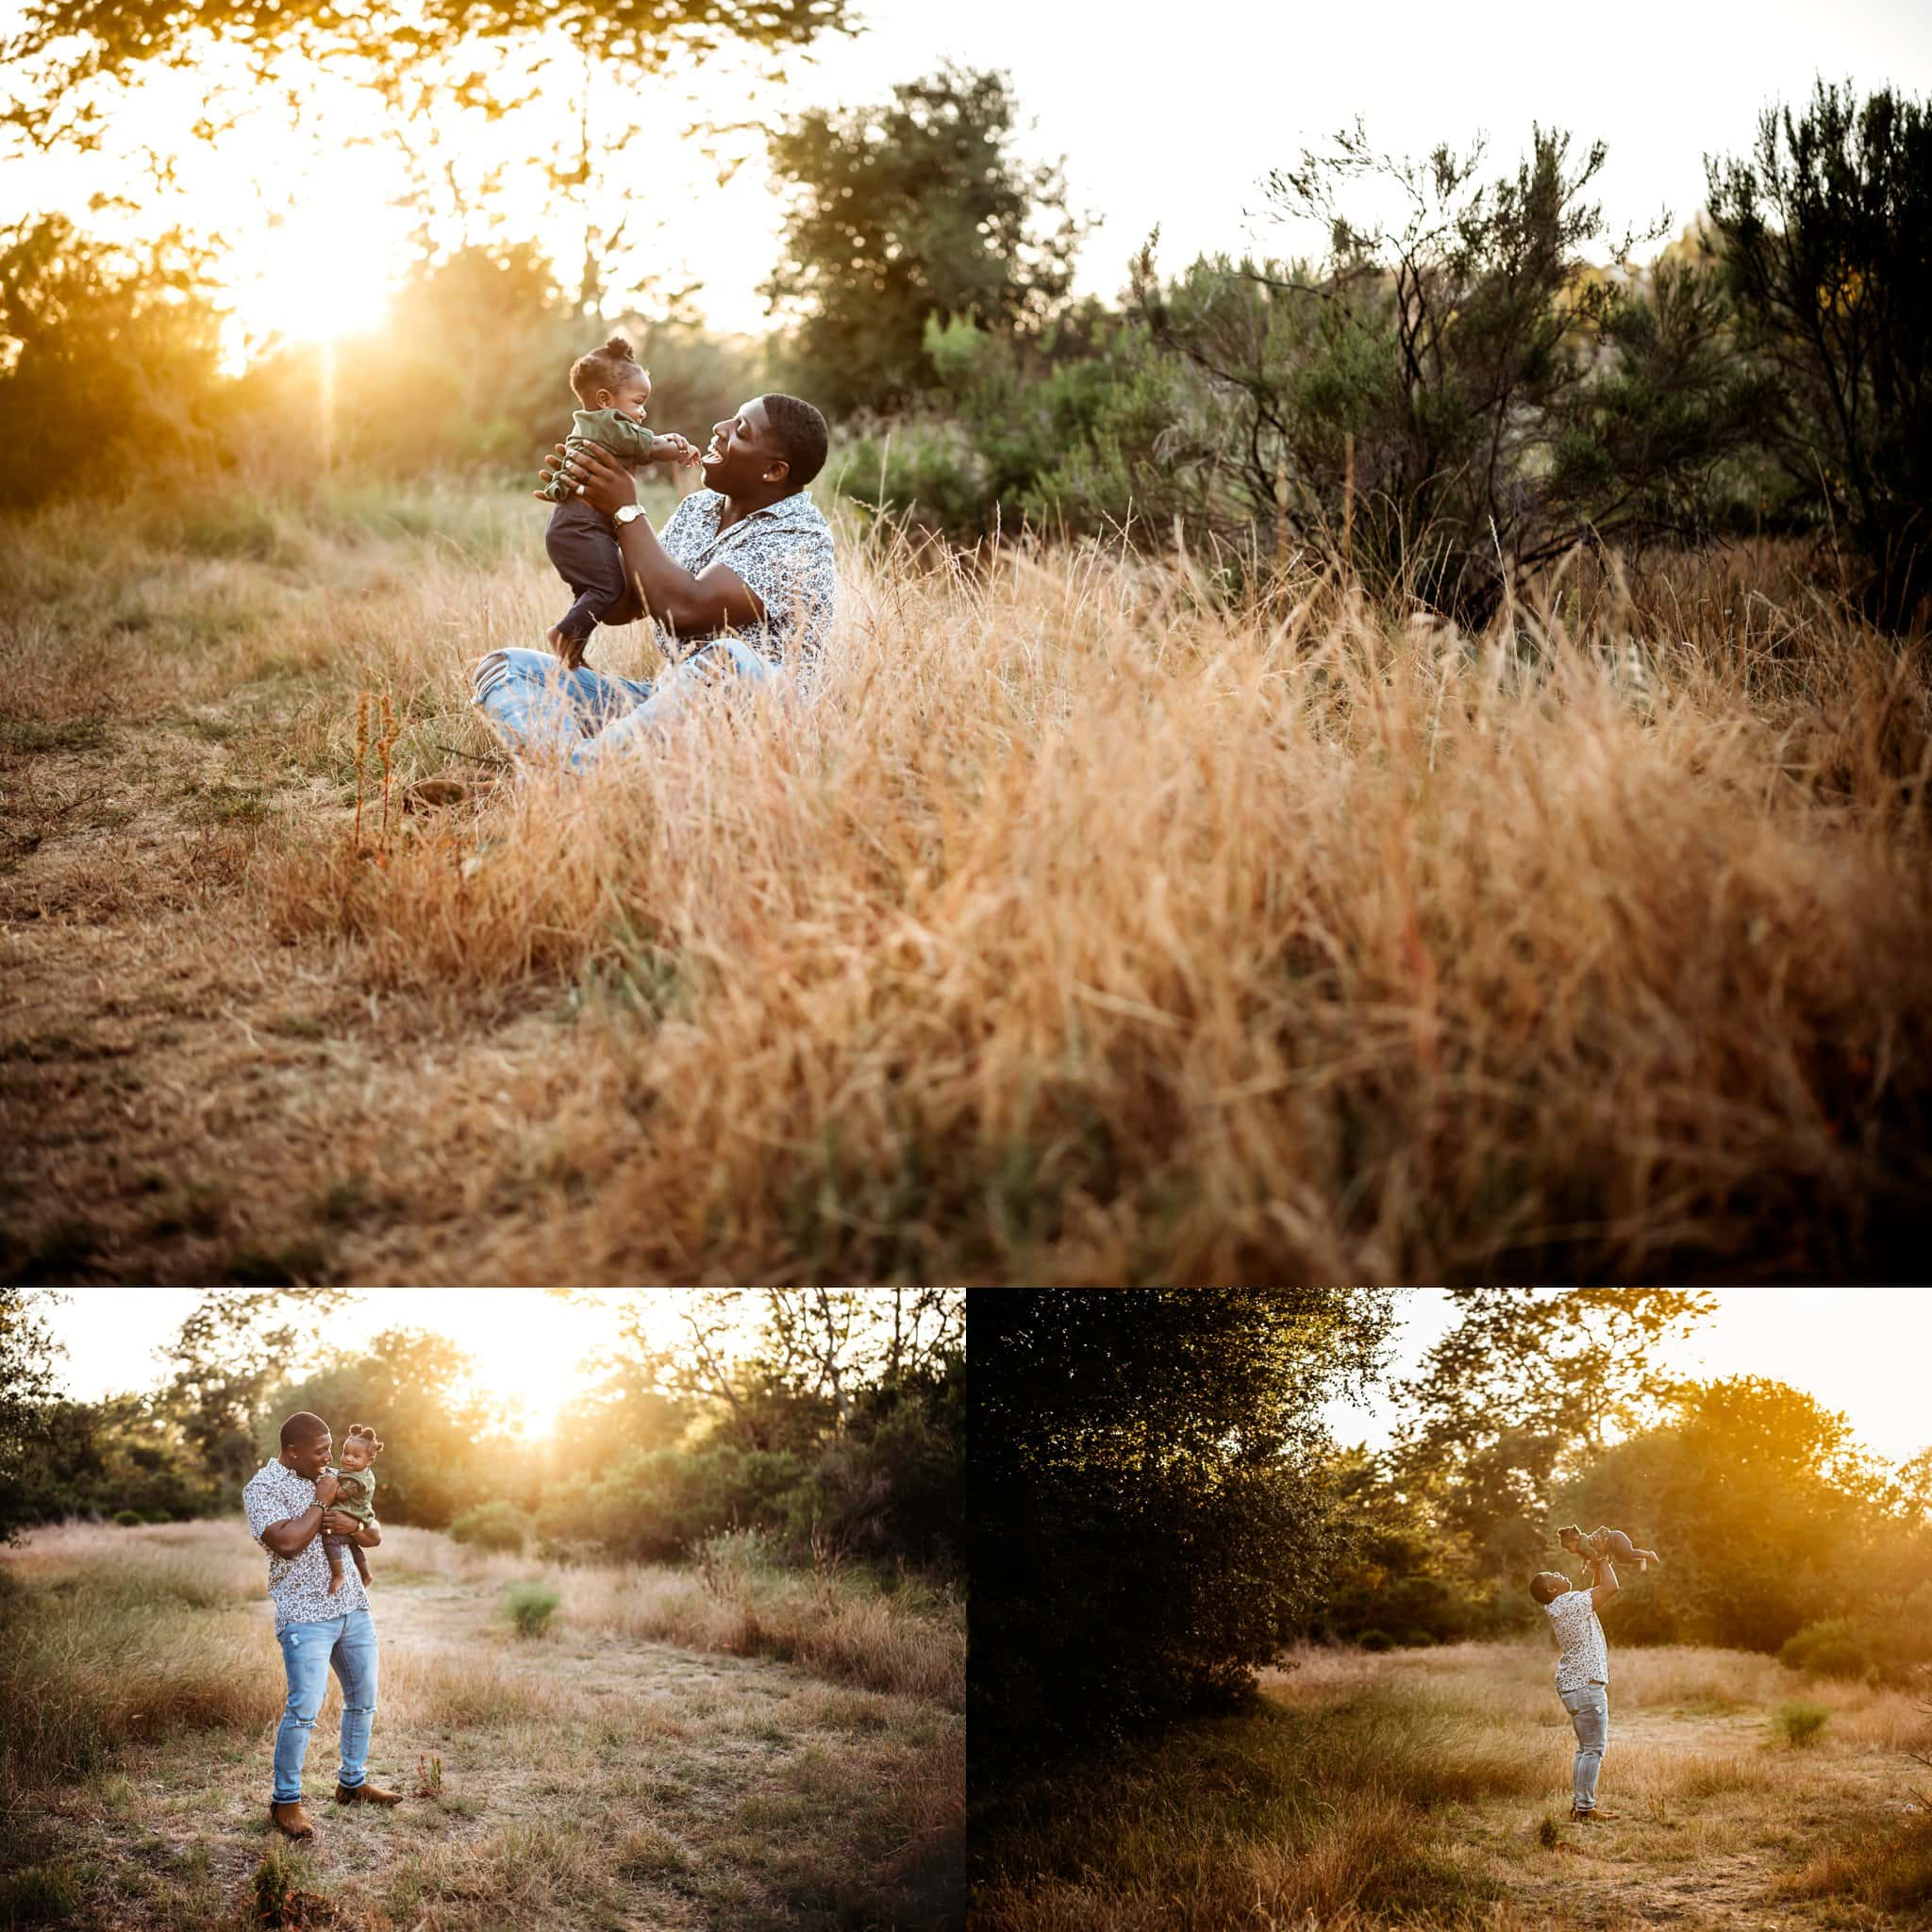 Father and 8 month old baby girl play together in a field with golden light